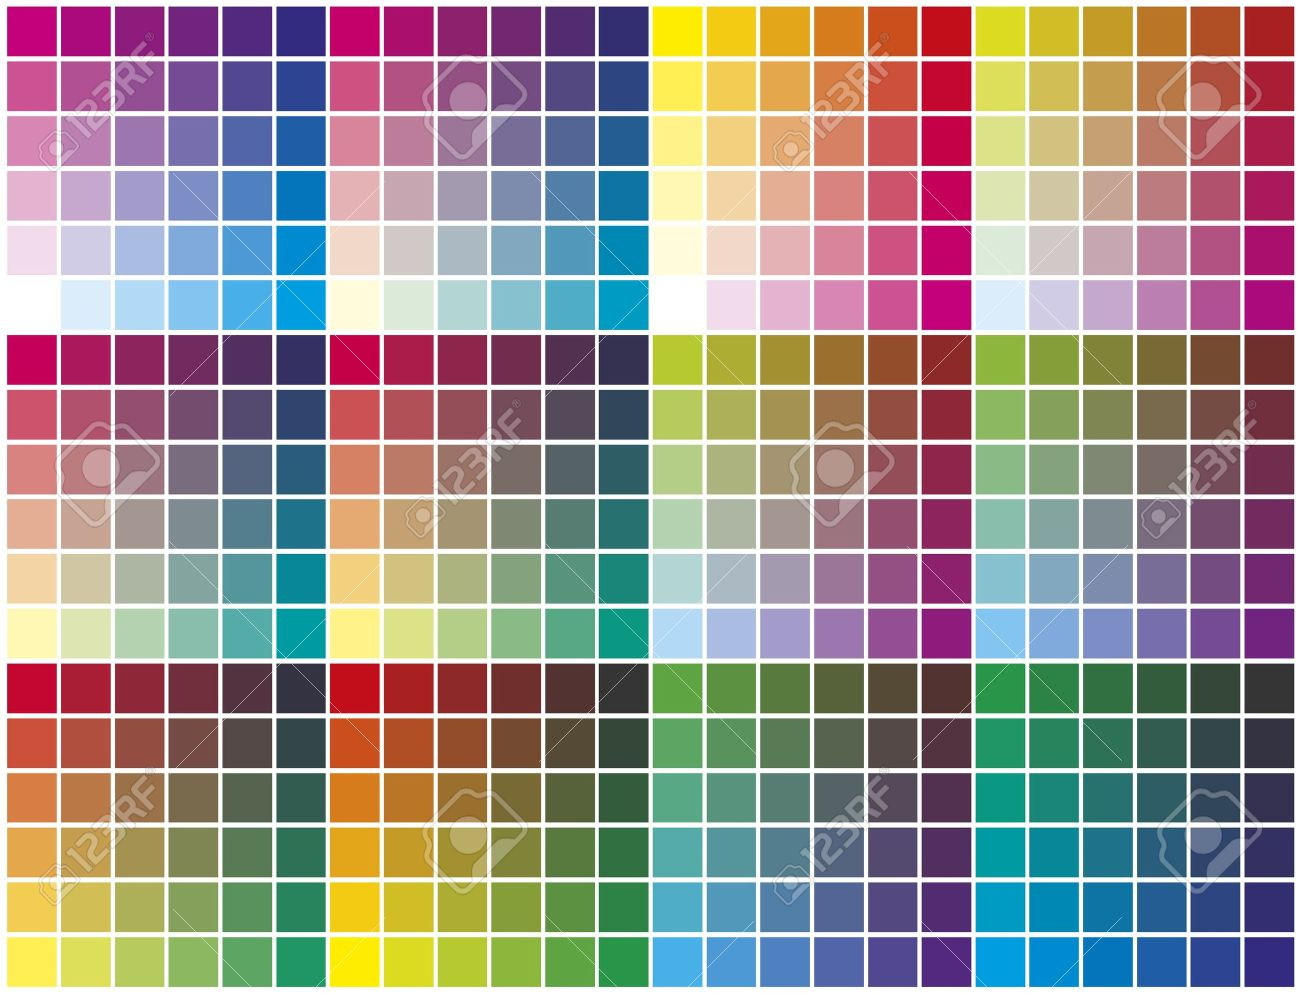 Color Palette Chart For Prepress Printing And Calibration Business Stock Vector